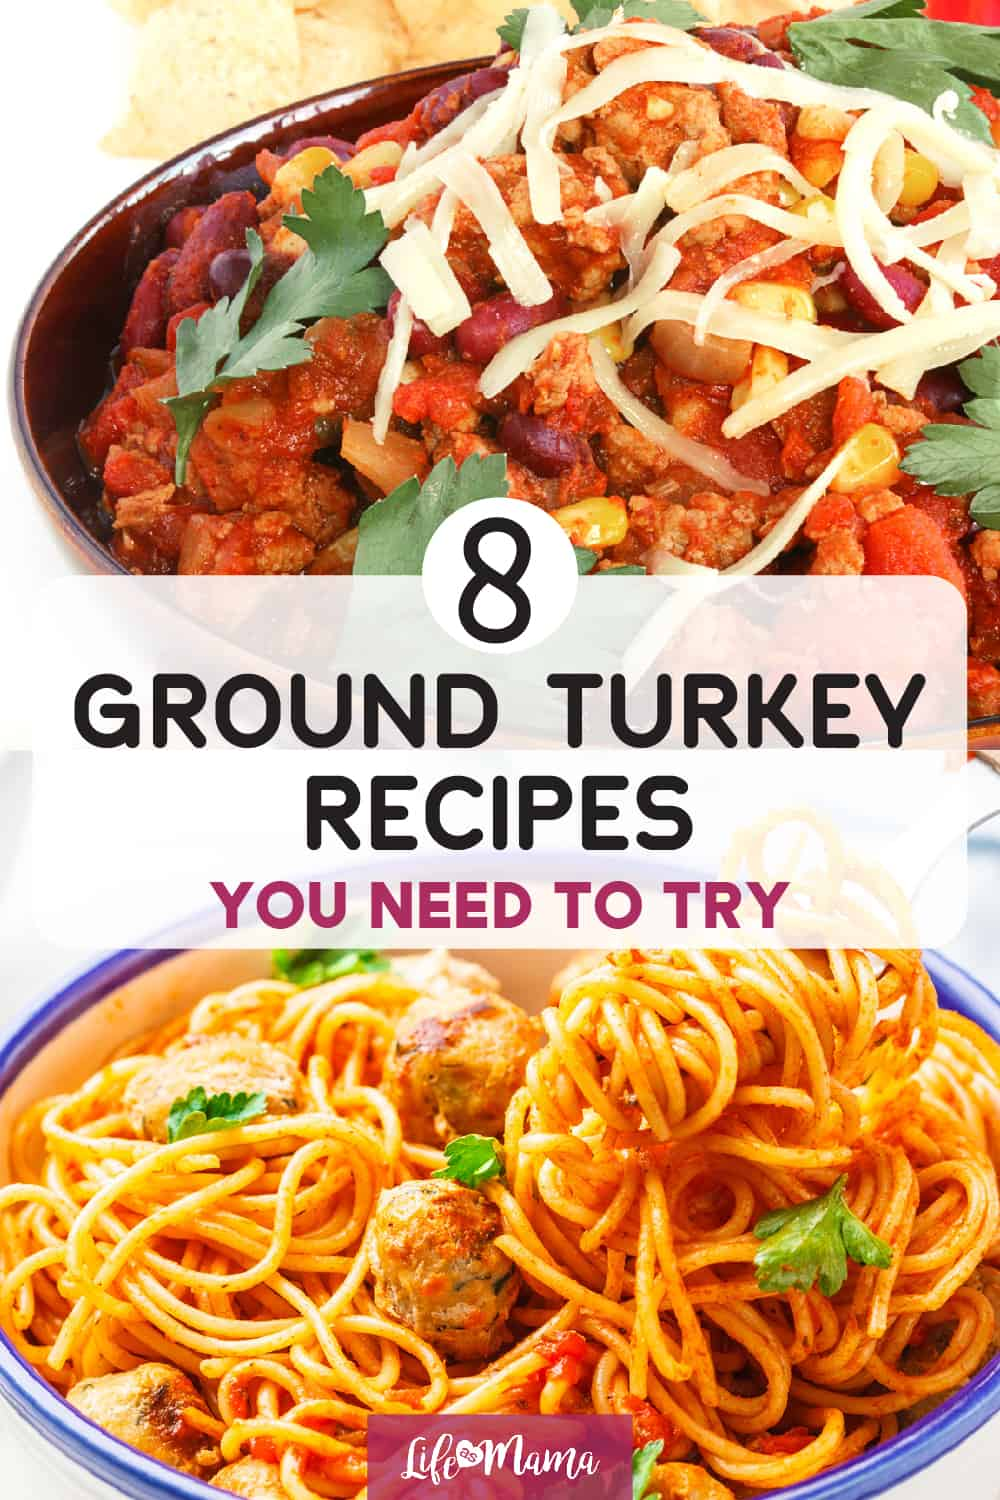 8 Ground Turkey Recipes You Need To Try